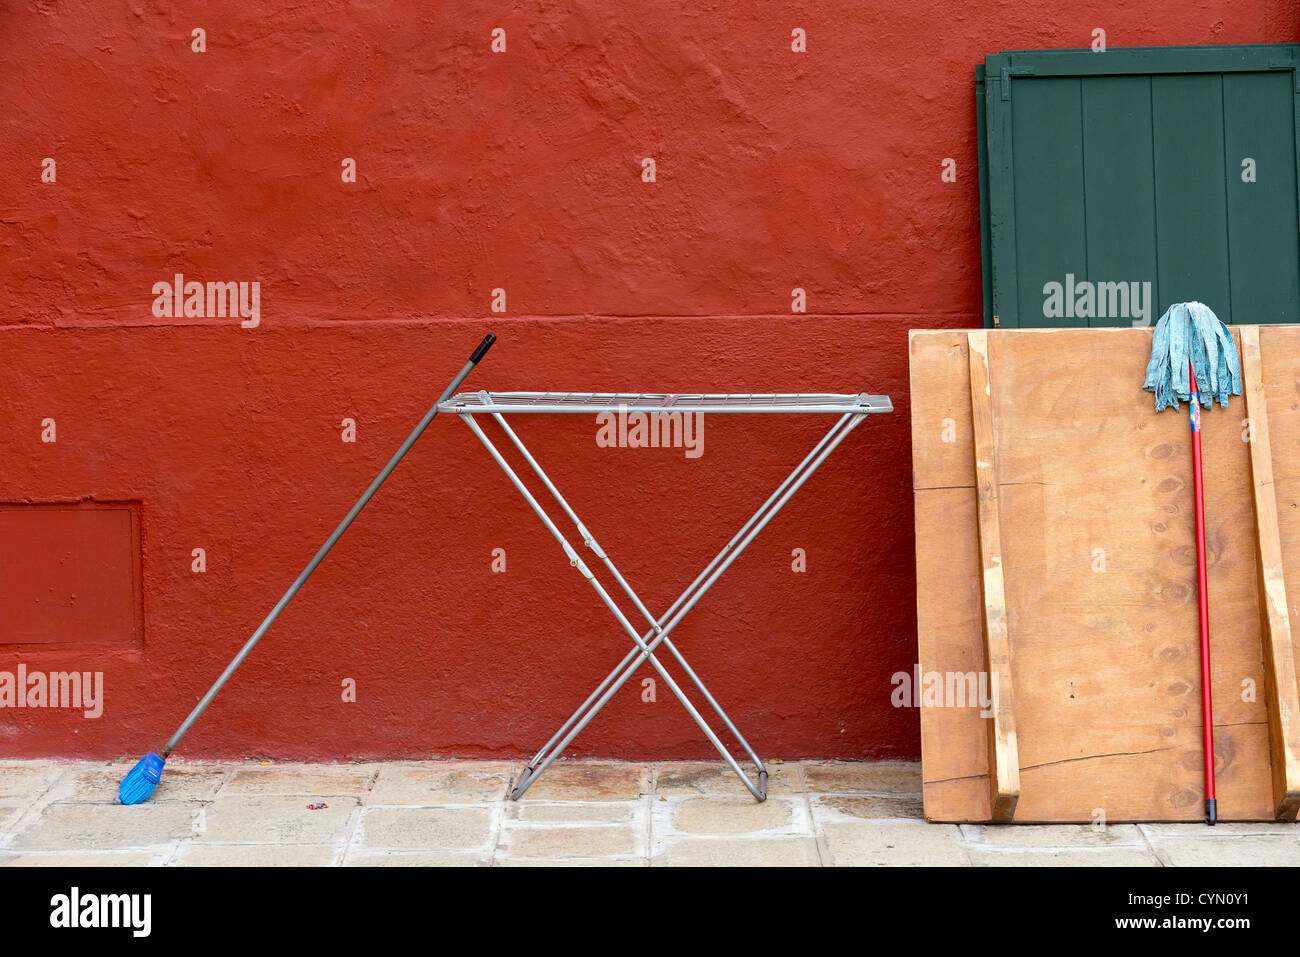 Ironing board and mops drying in the street outside a house newly painted rust-red, in Burano, Venice - Stock Image